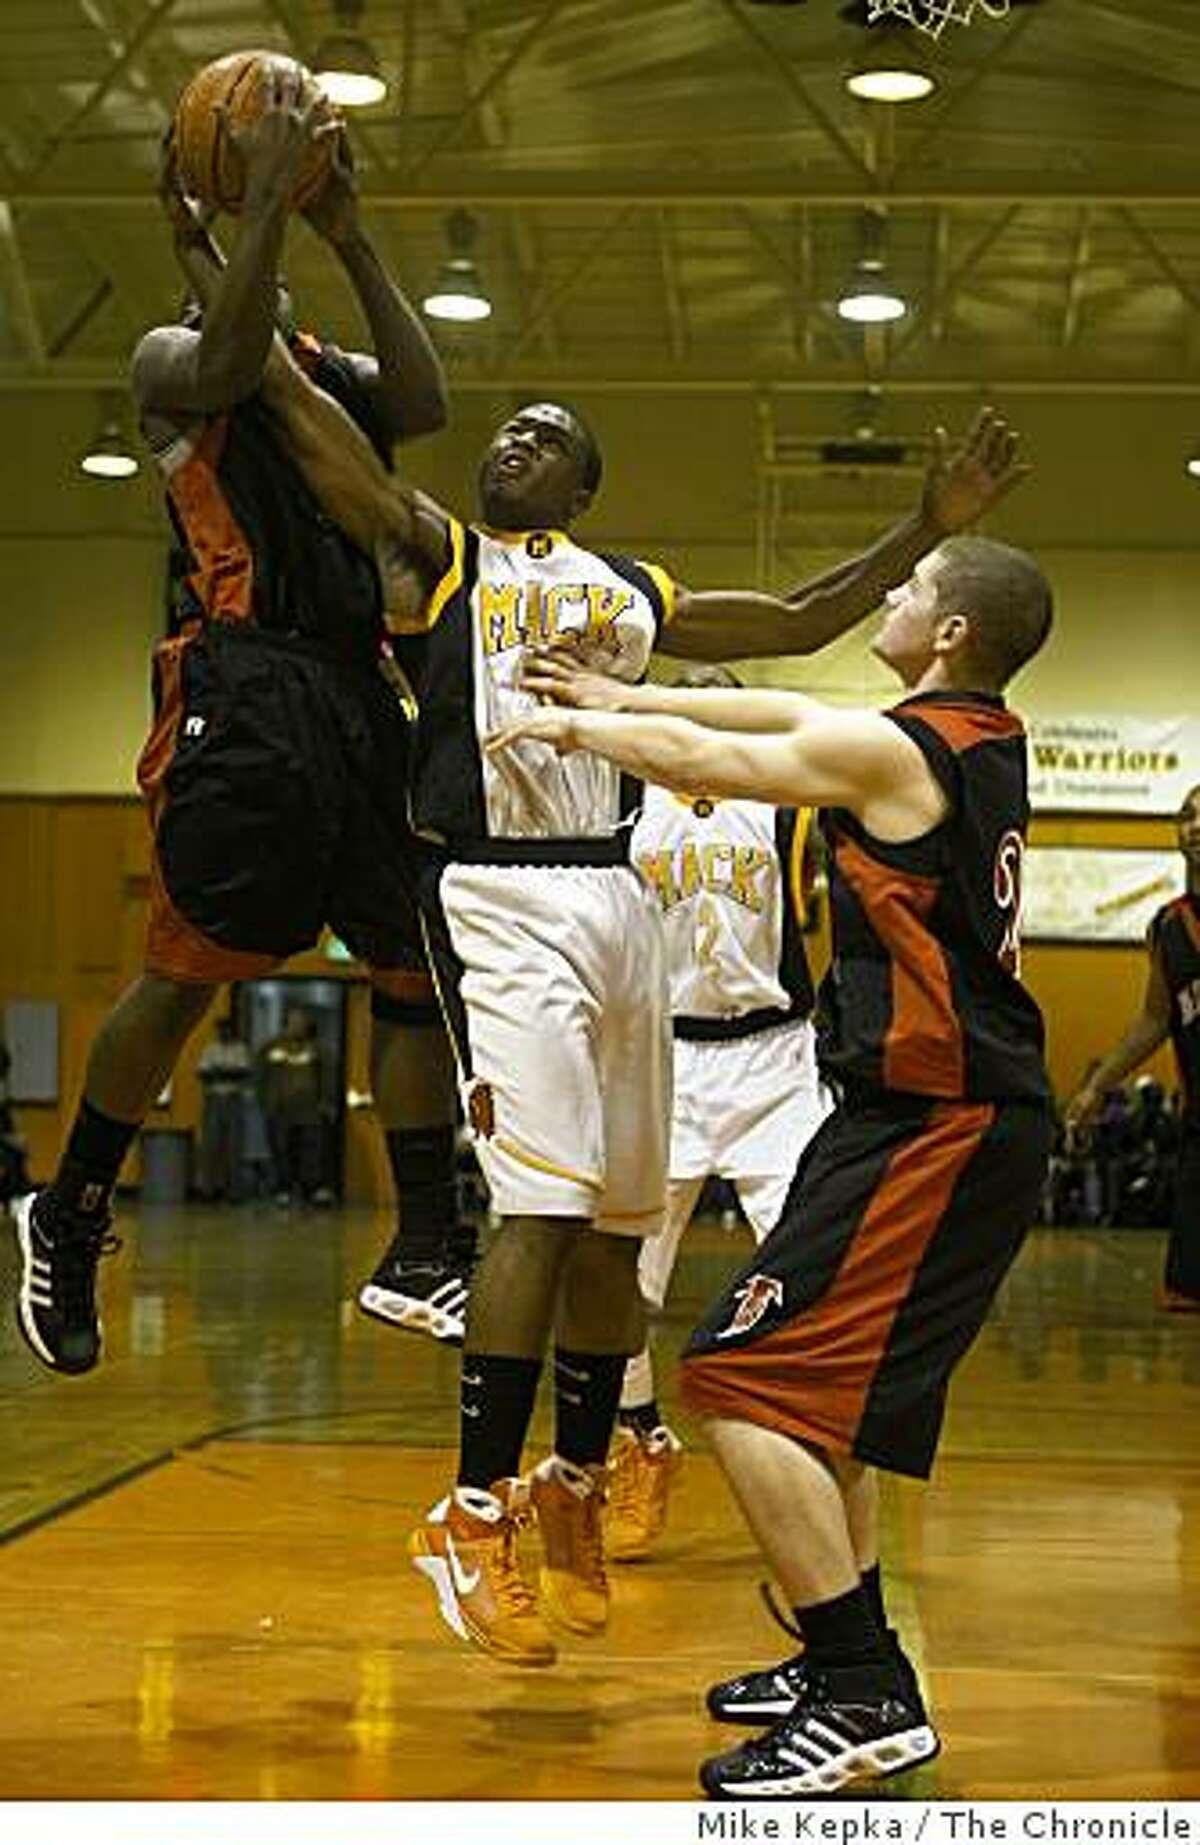 #22 Will Cherry (center) of McClymonds, tries keep control of the ball from #24 Tra' Mayne Bondurant and #23 Josh Lasley (right) of Fairfield at McClymonds High School on Friday Jan. 2, 2009 in Oakland, Calif.